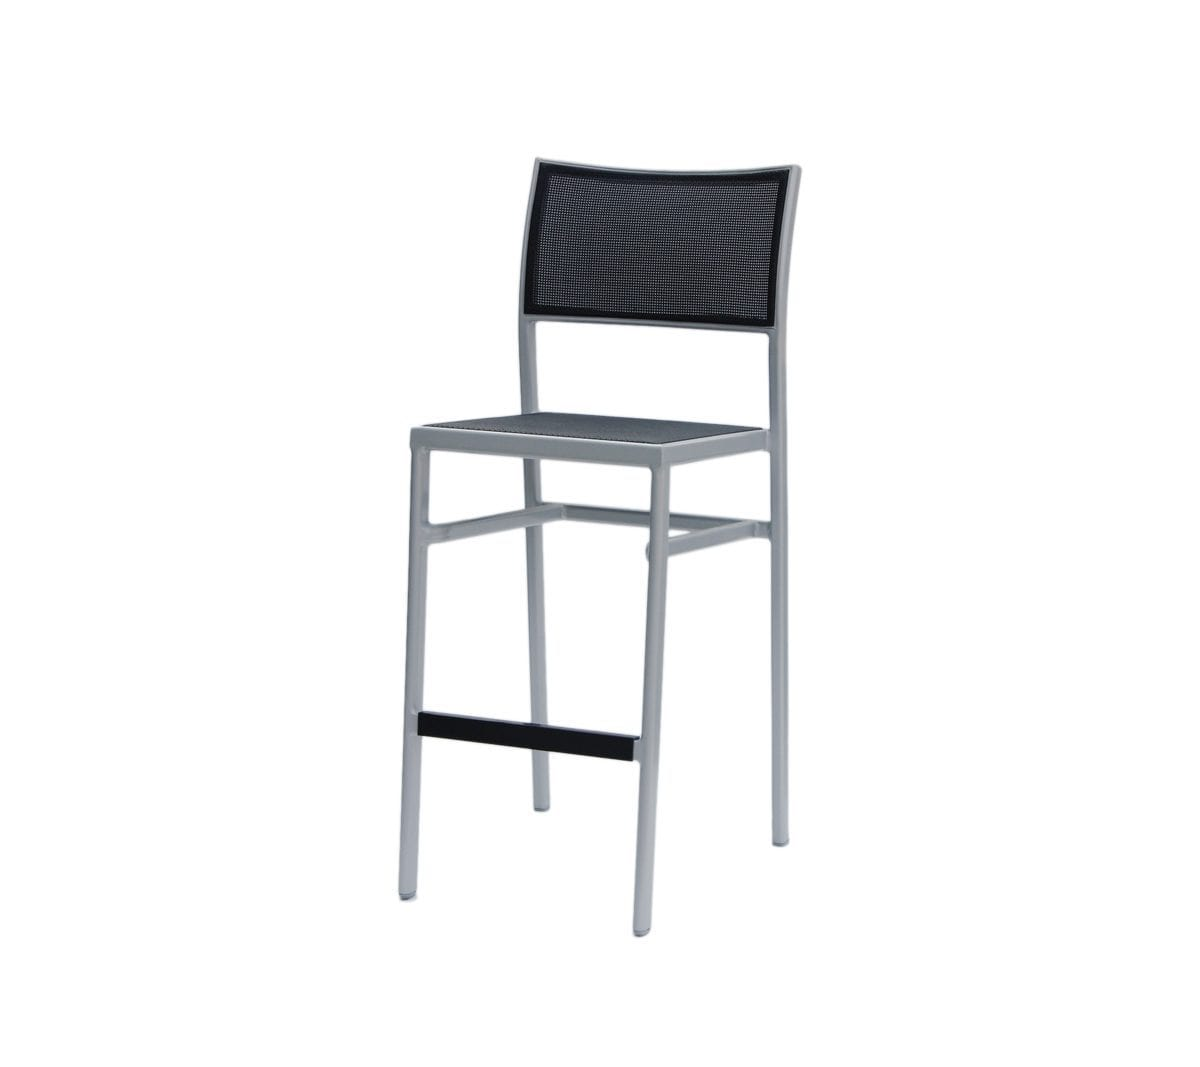 Ratana Bar Chair New Roma Sling Bar Chair w/o Arm